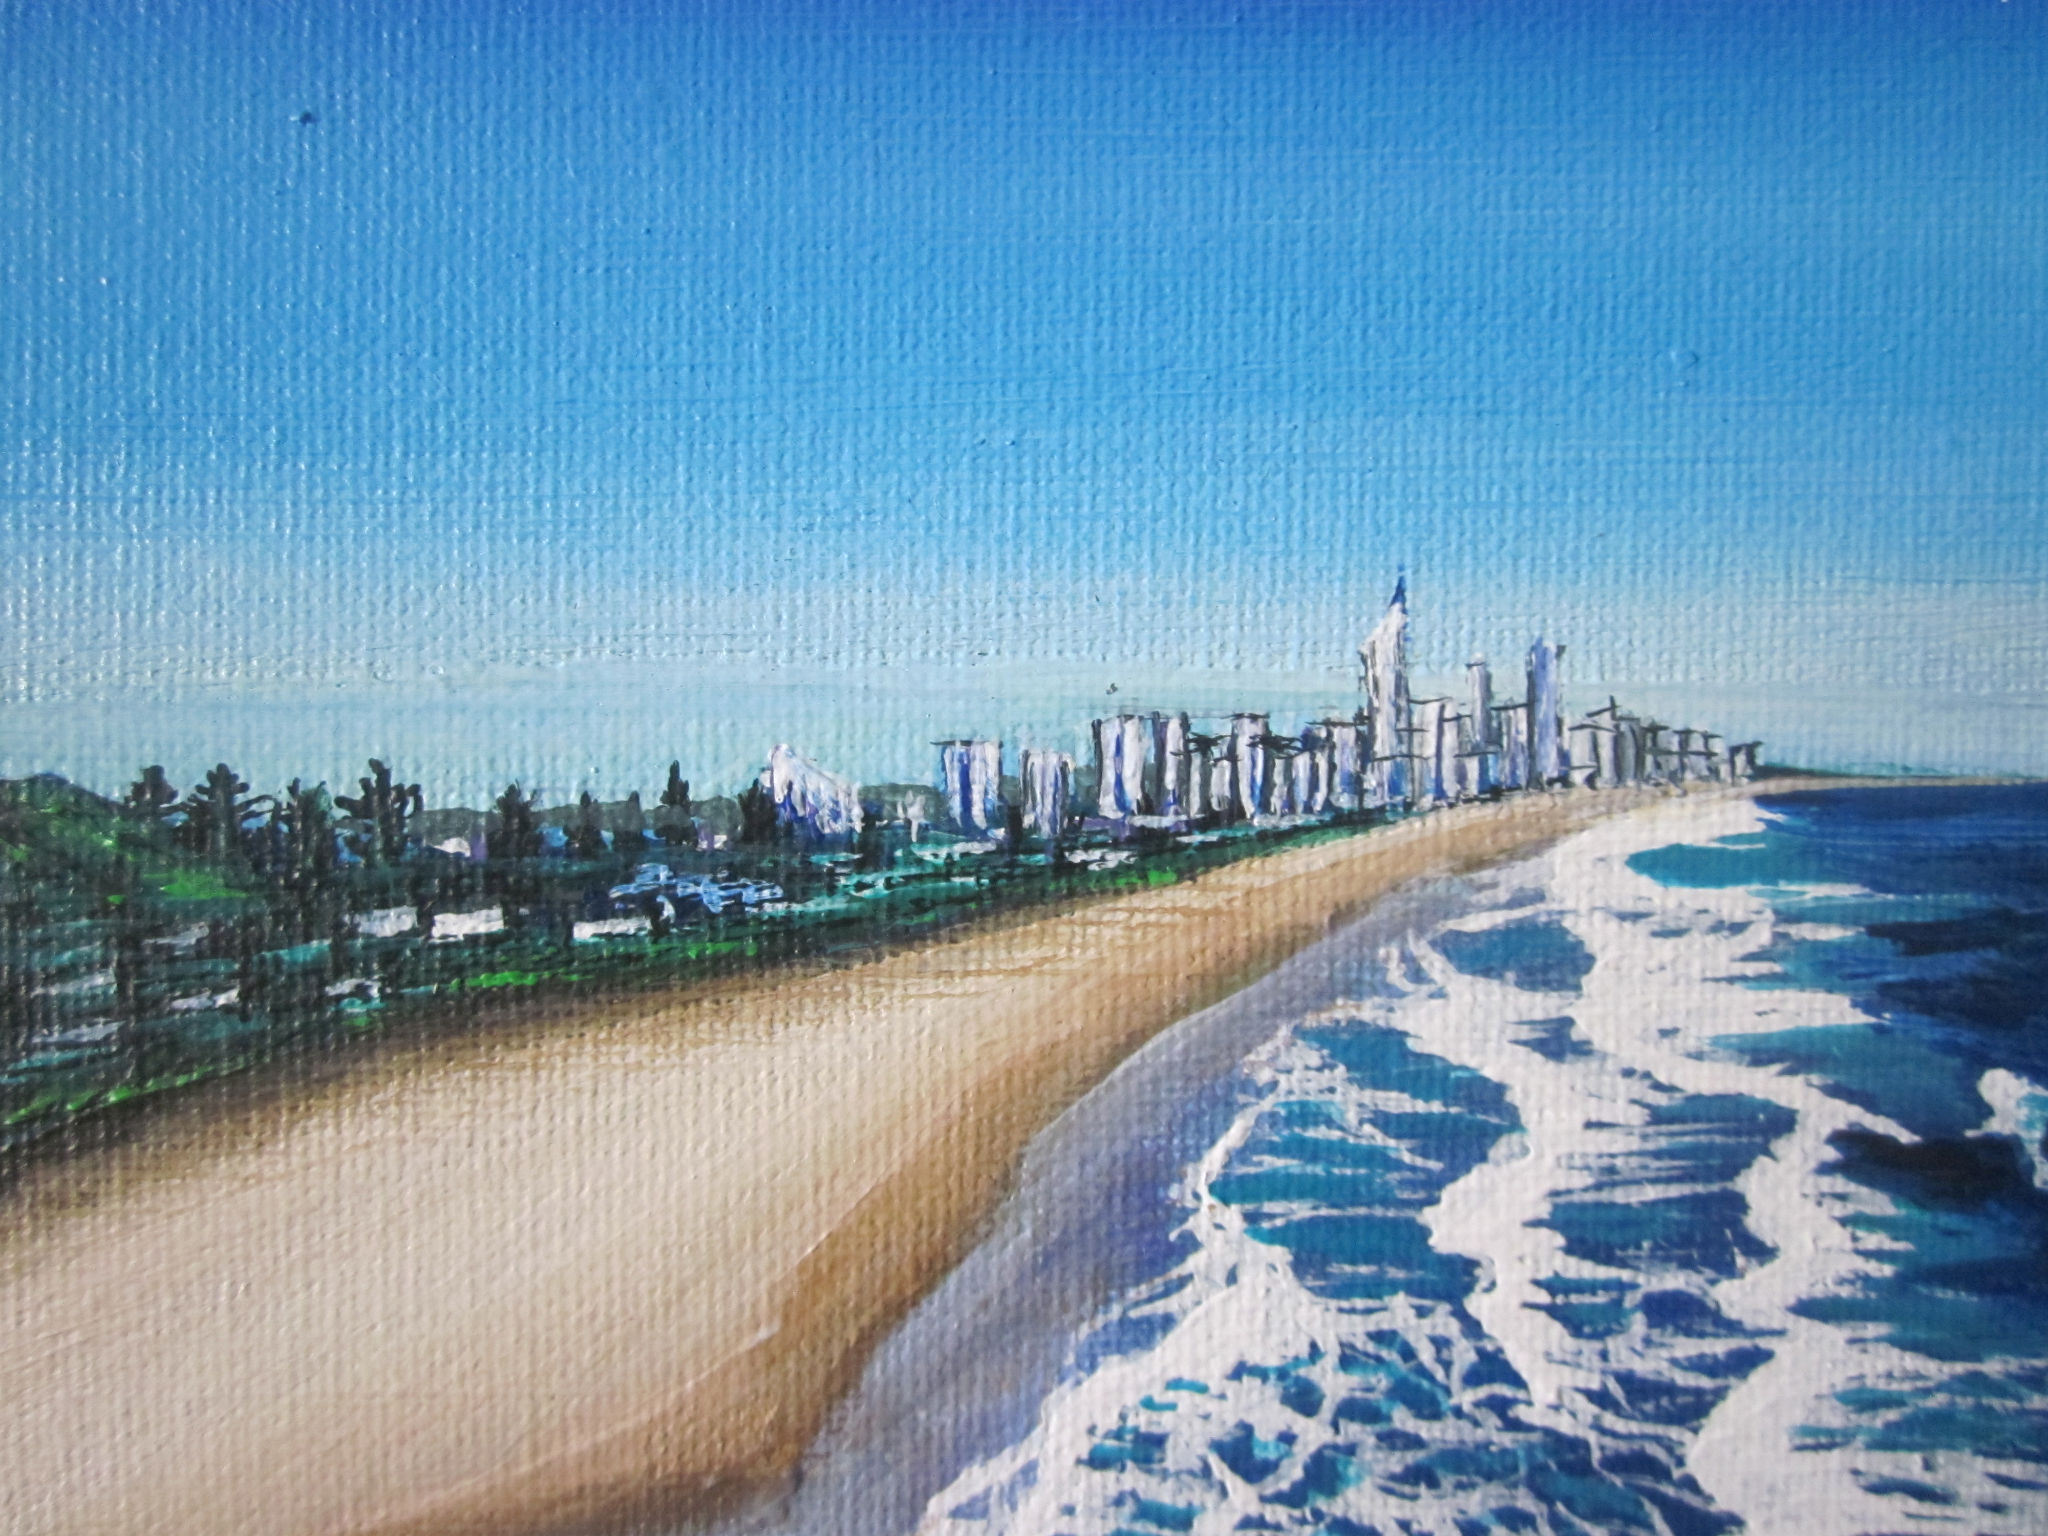 Burleigh Heads To Surfers Paradise By Charleen Morris